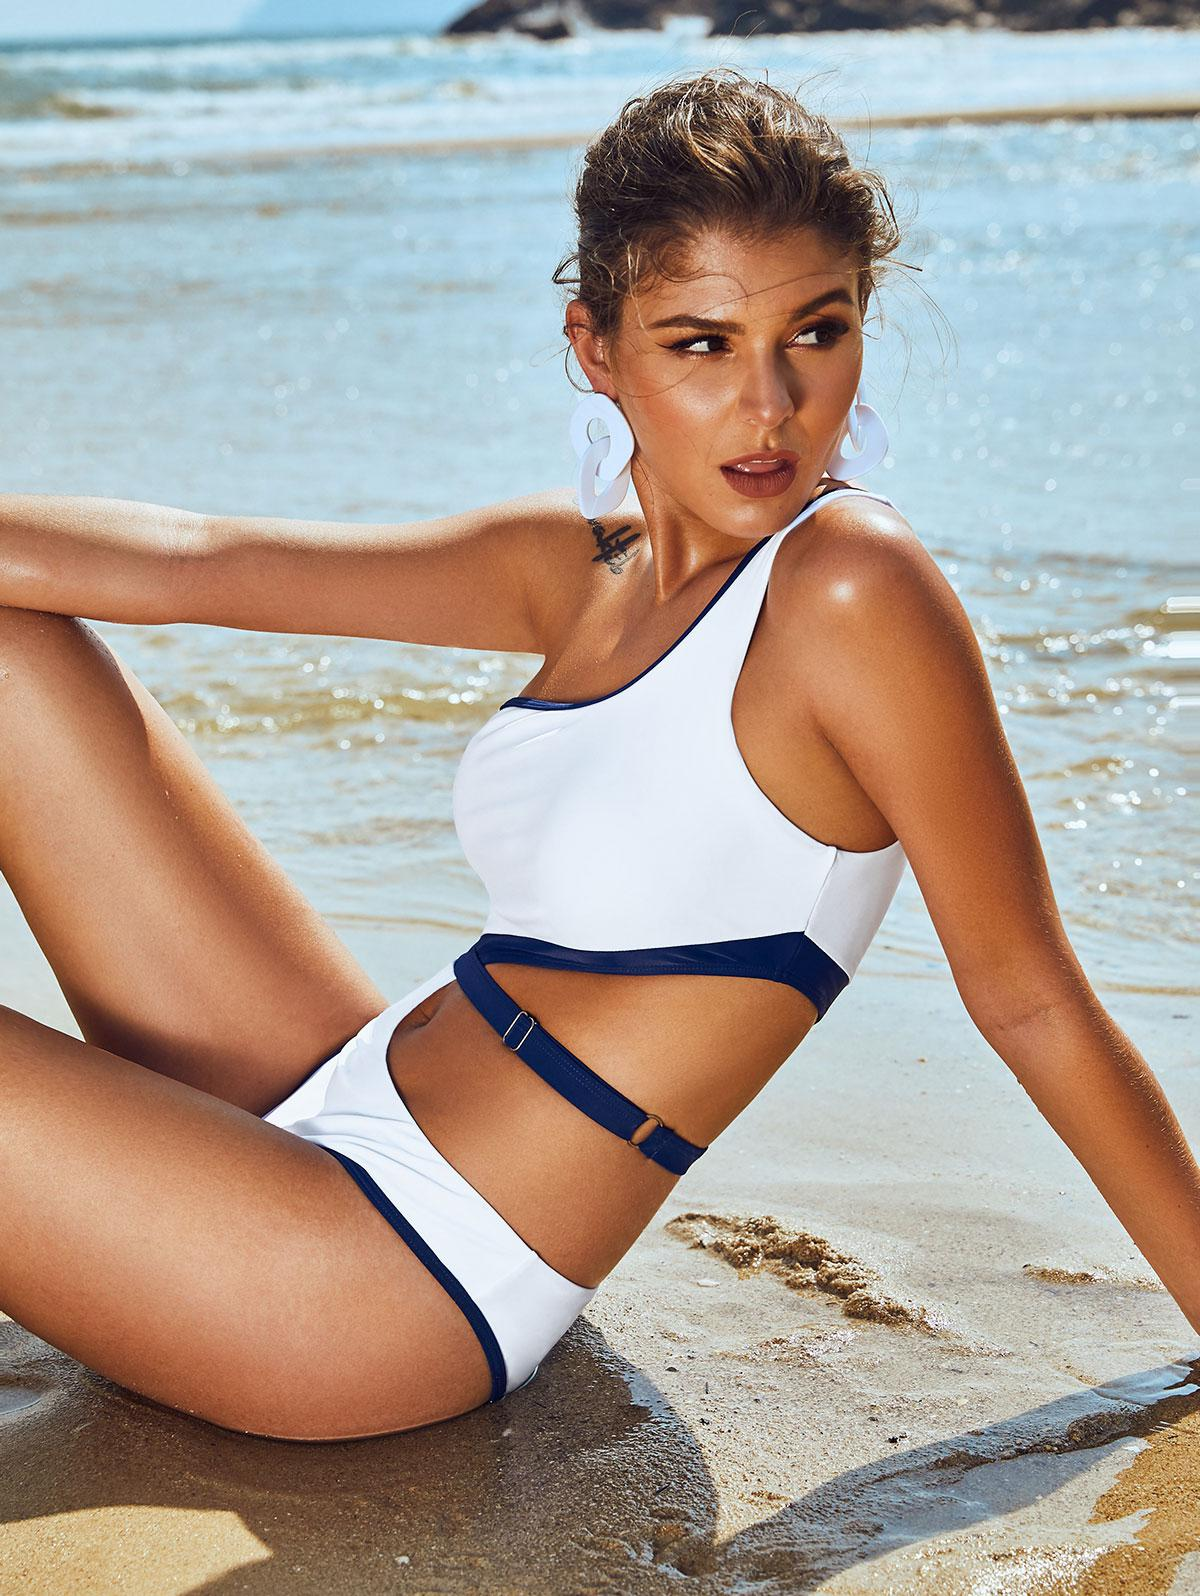 ZAFUL Contrast Piping Cutout One Shoulder One-piece Swimsuit фото